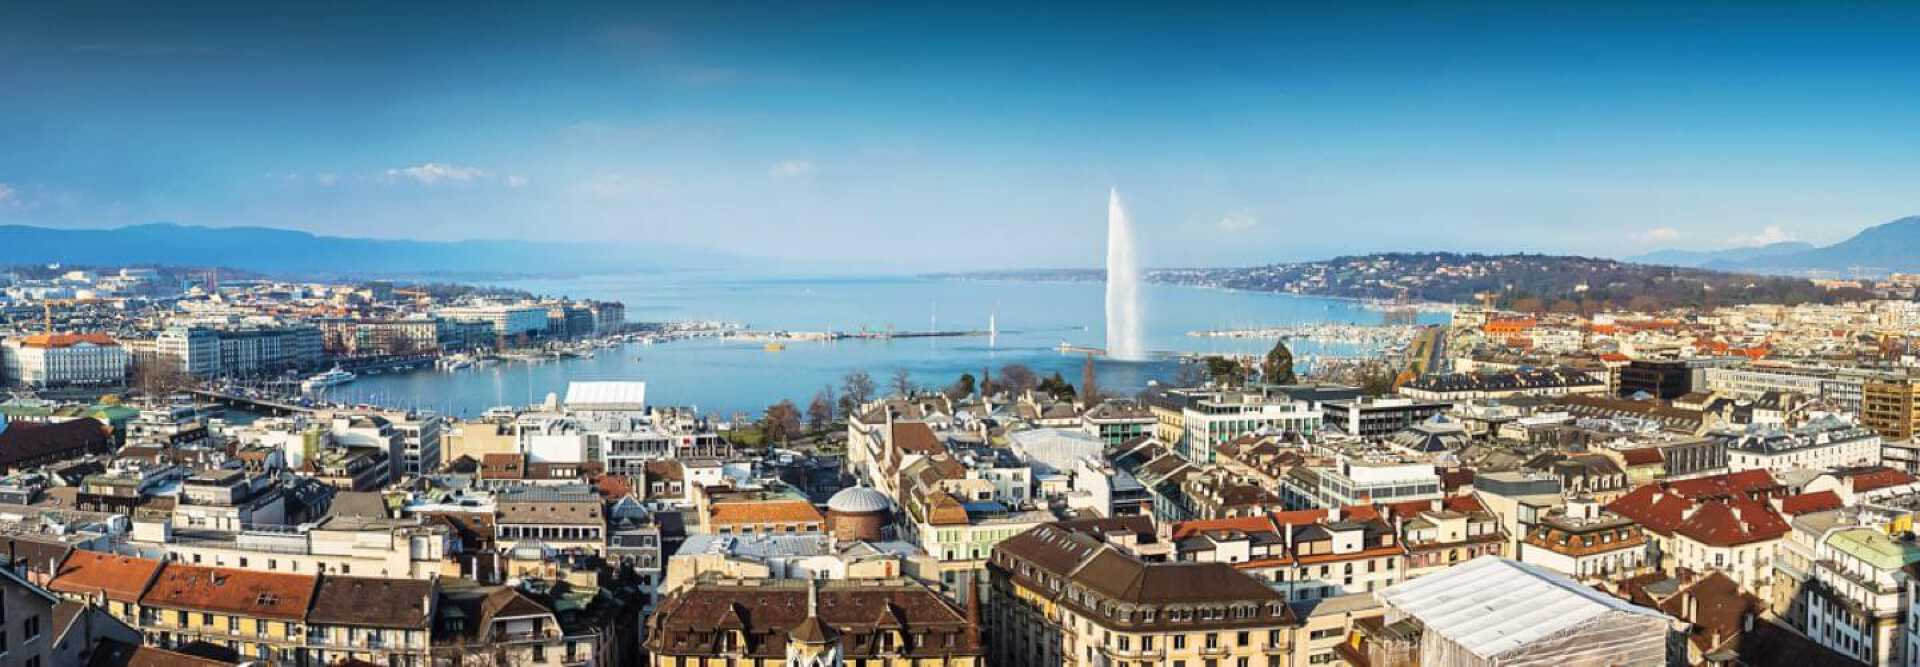 Daylight skyline of Geneva Lake with its Jet d'Eau and the Mont Blanc bridge